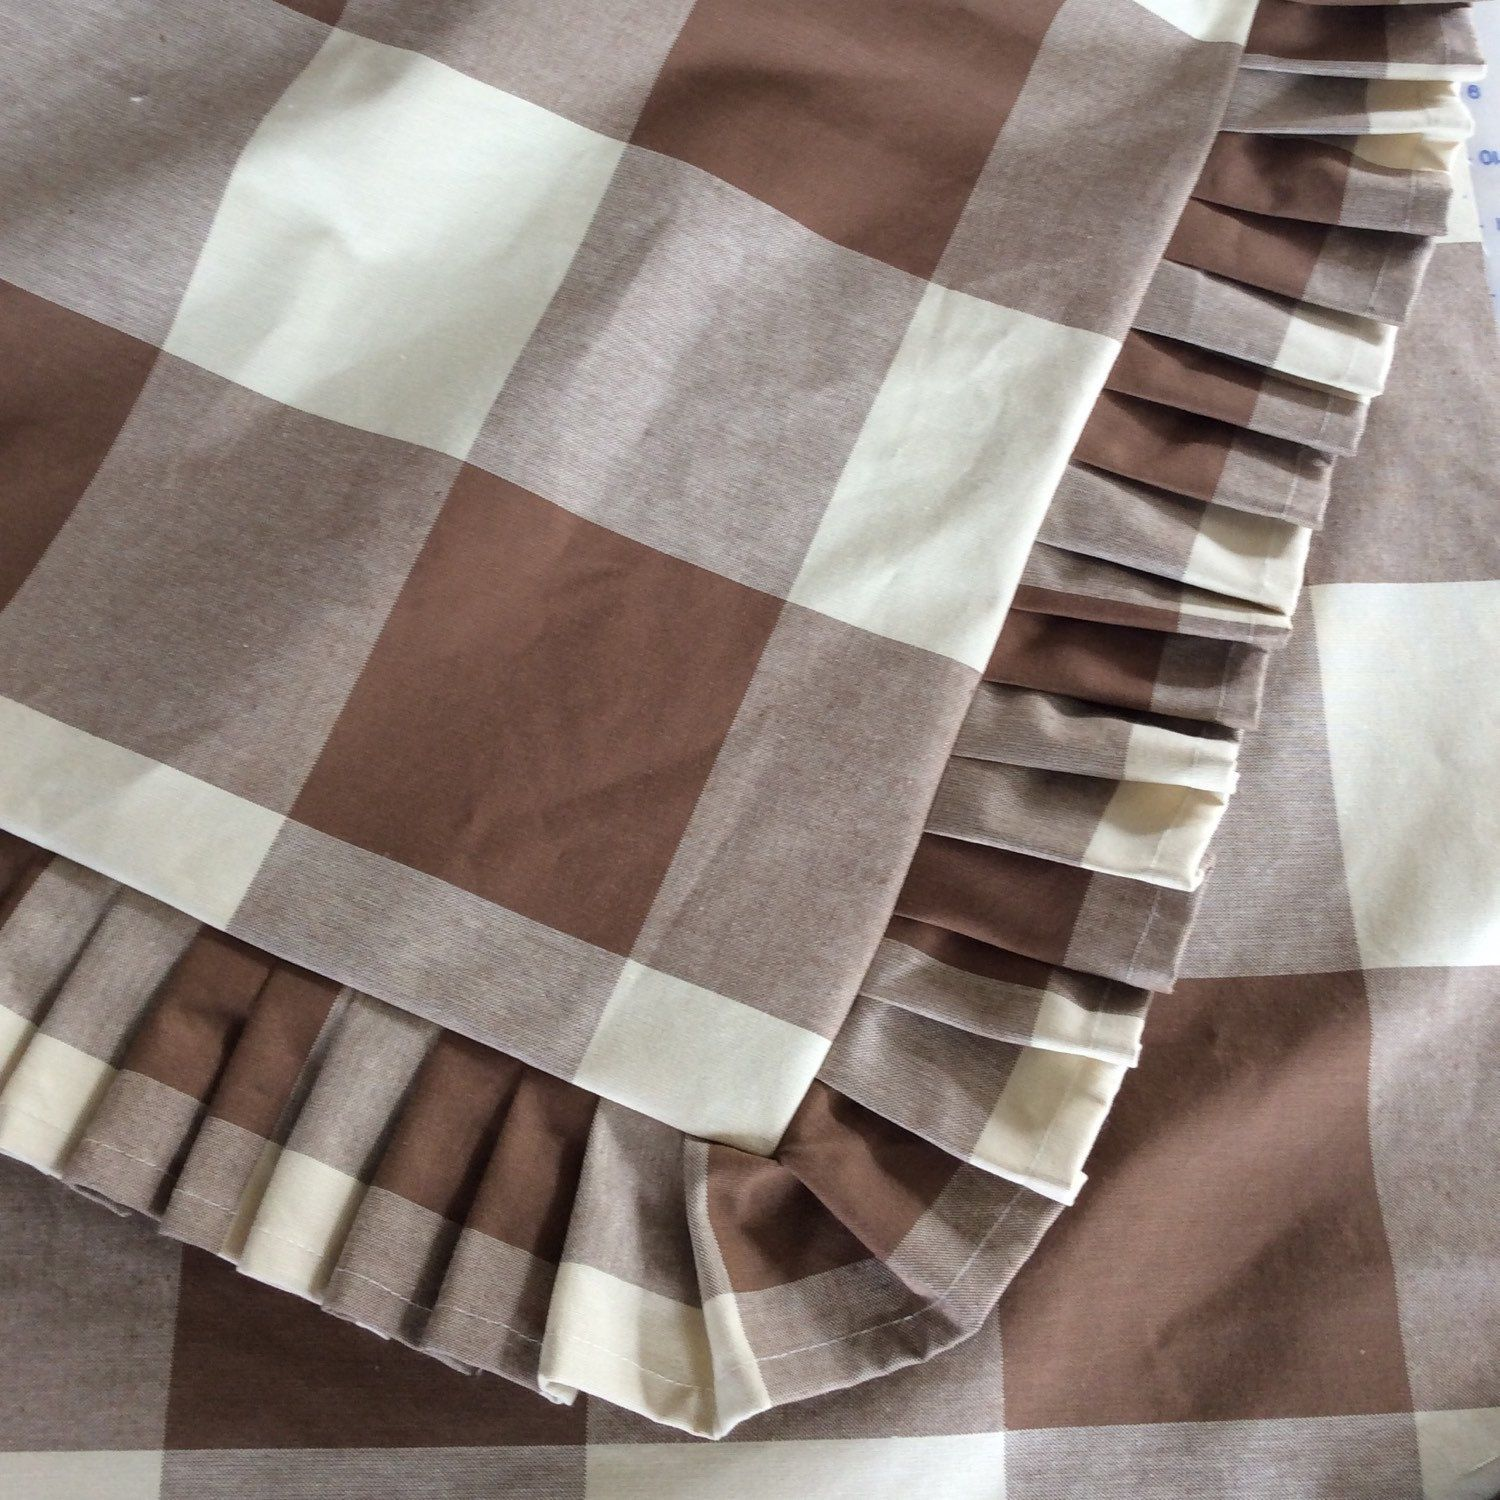 P Kaufmann Large Buffalo Check Euro Sham With Pleated Ruffle Or Gathered Ruffle Available In Several Colors Buffalo Check Fabric Buffalo Check Bedding Brown Decor